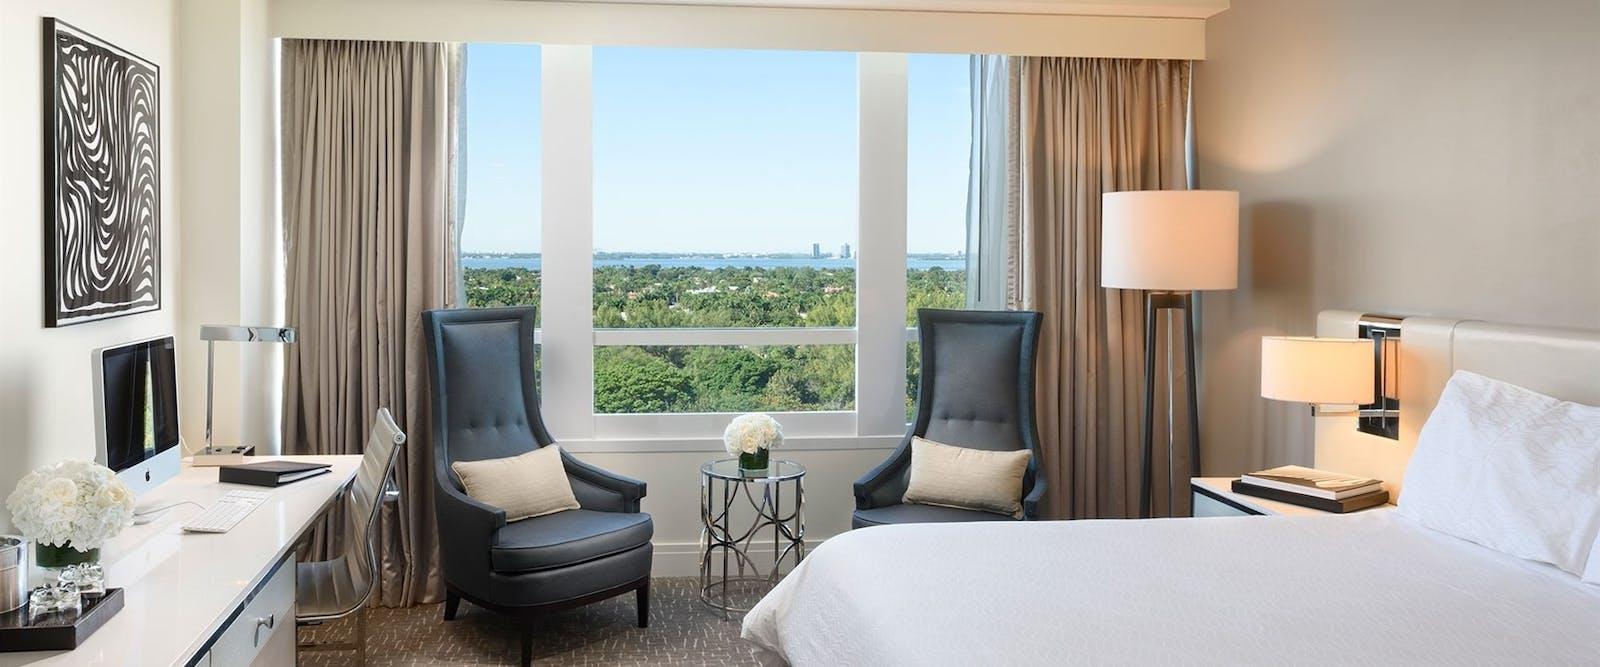 Deluxe Bayview Room at Fontainebleau Miami Beach